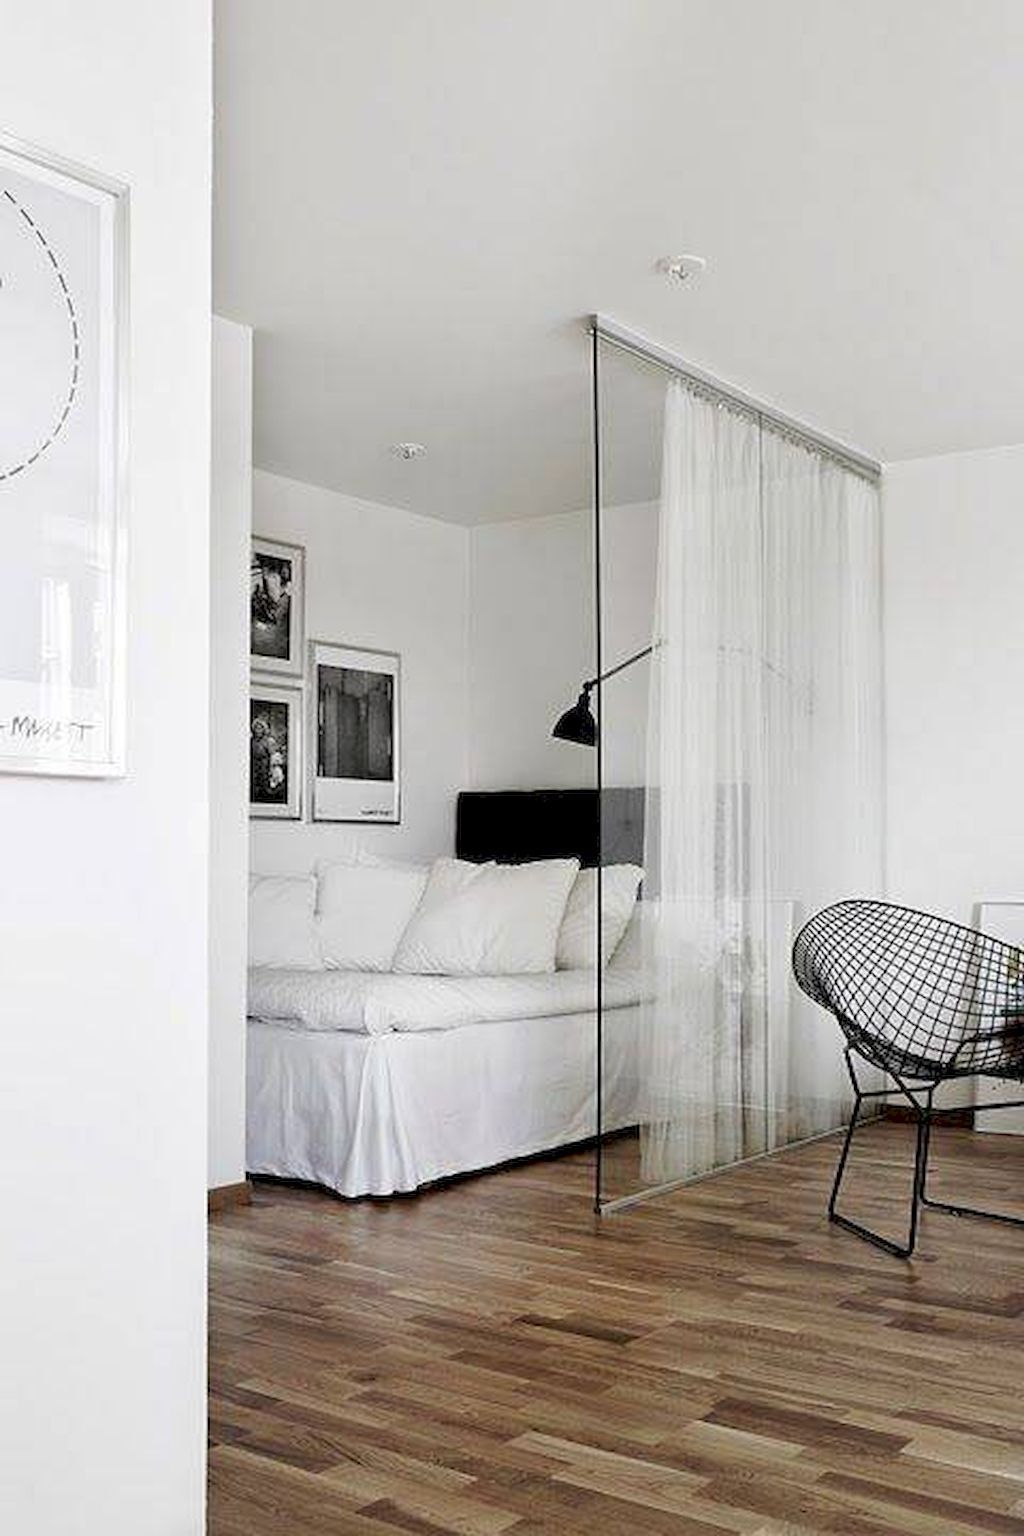 First Apartment Decorating Ideas on a Budget